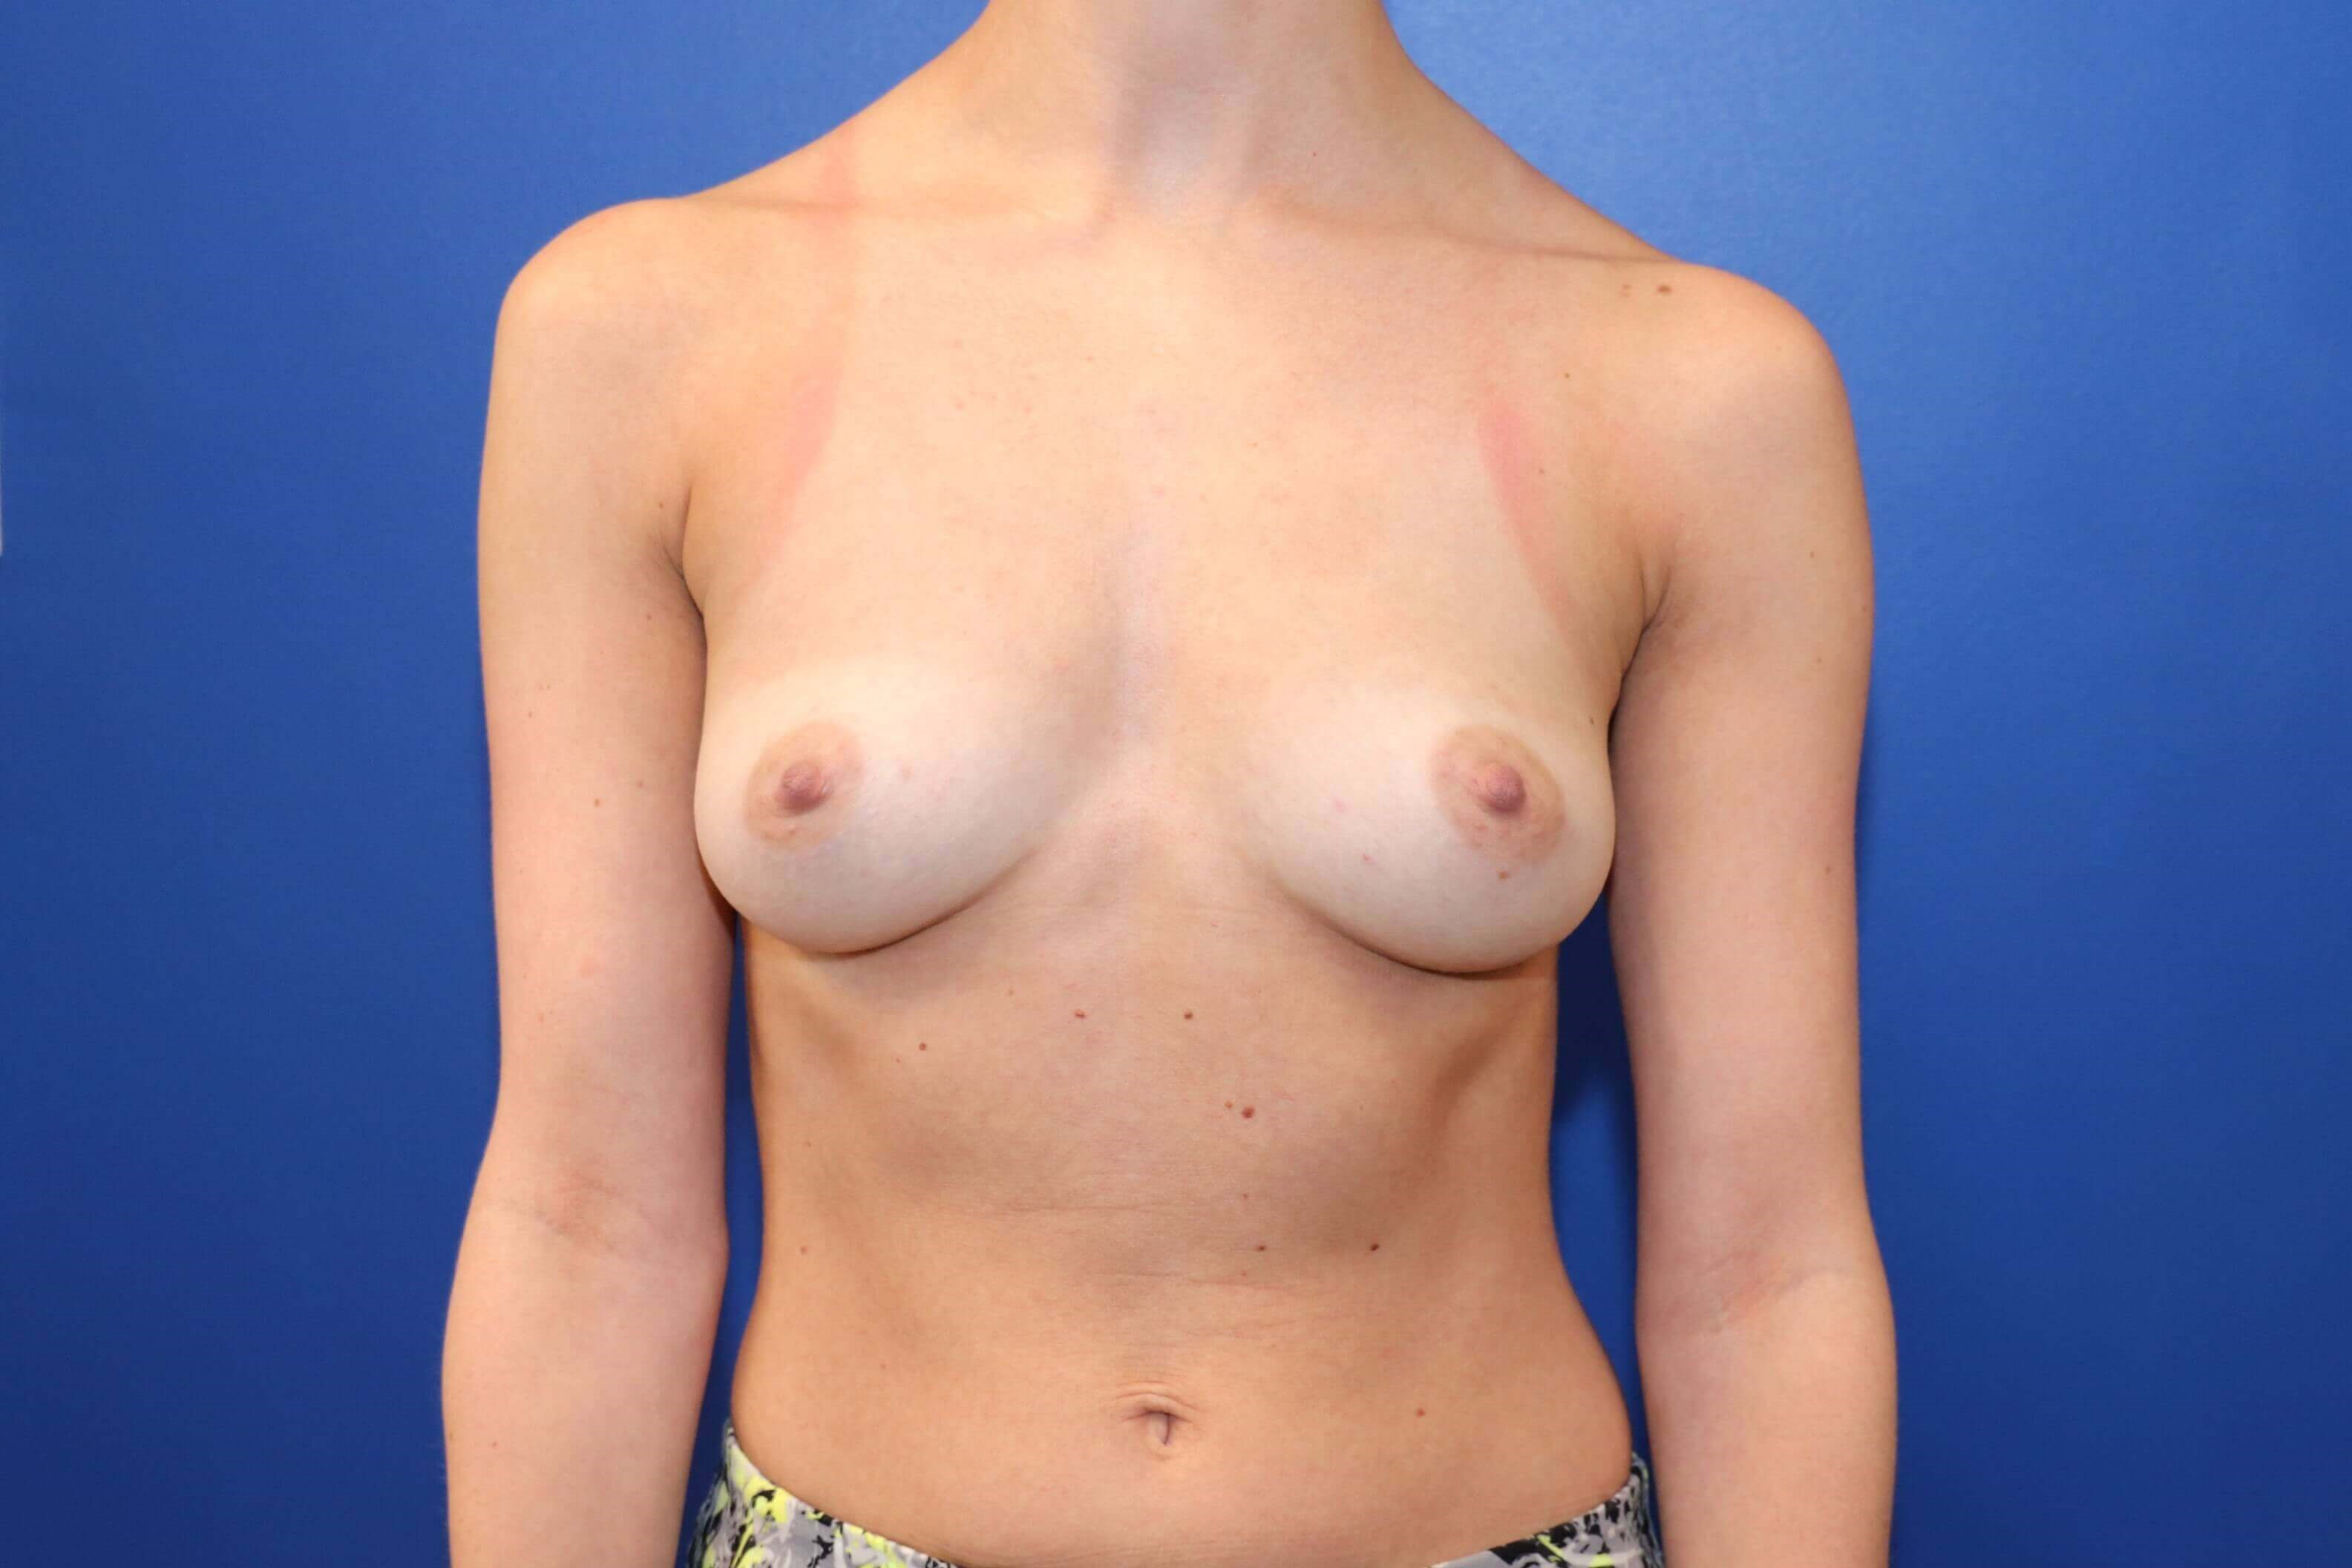 C cup Breast Implants Before